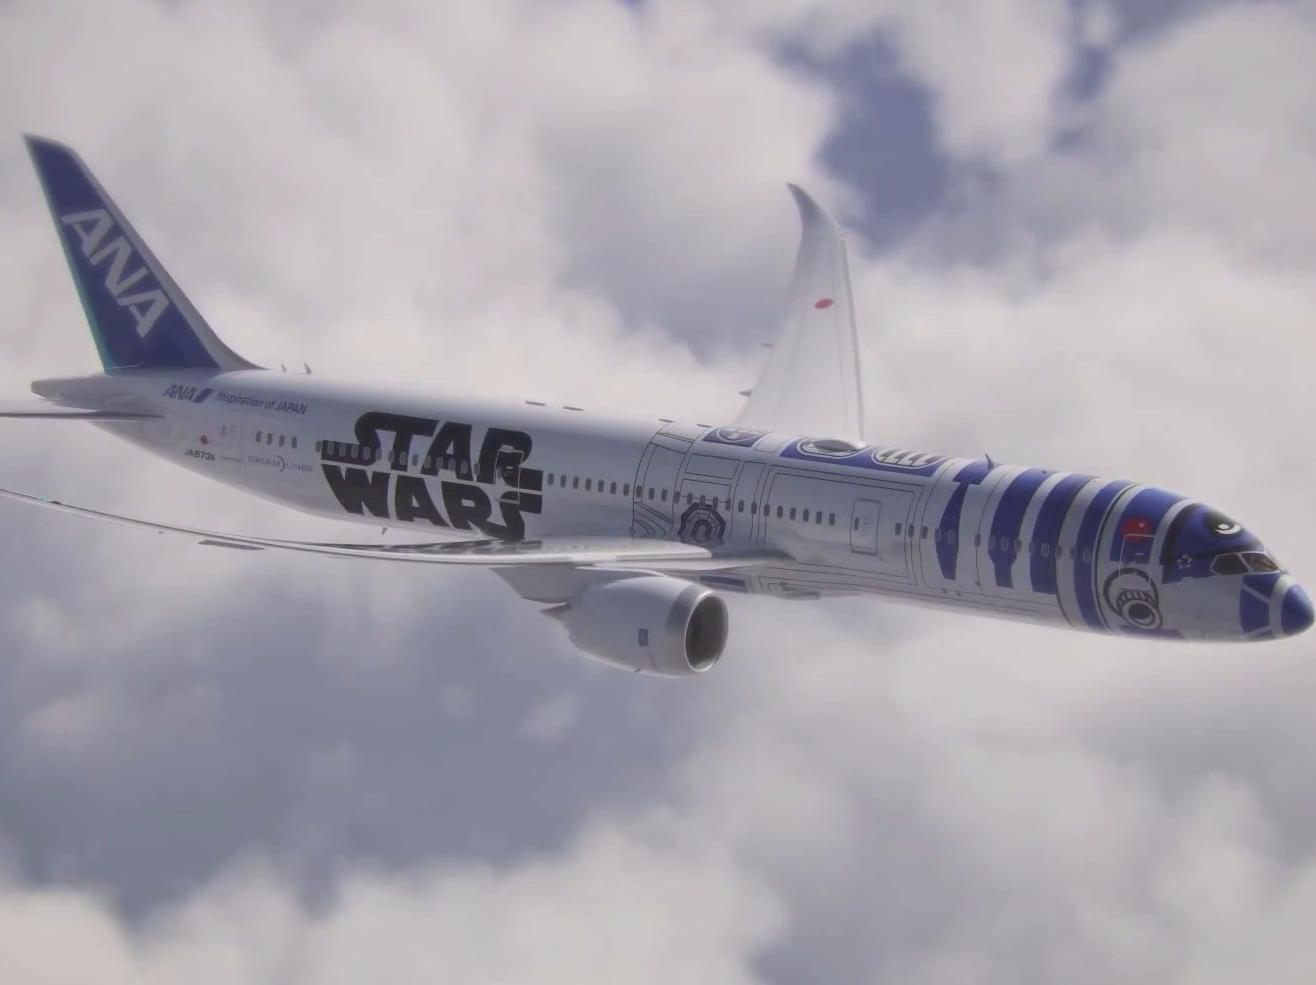 This 'Star Wars' Boeing Dreamliner is with us